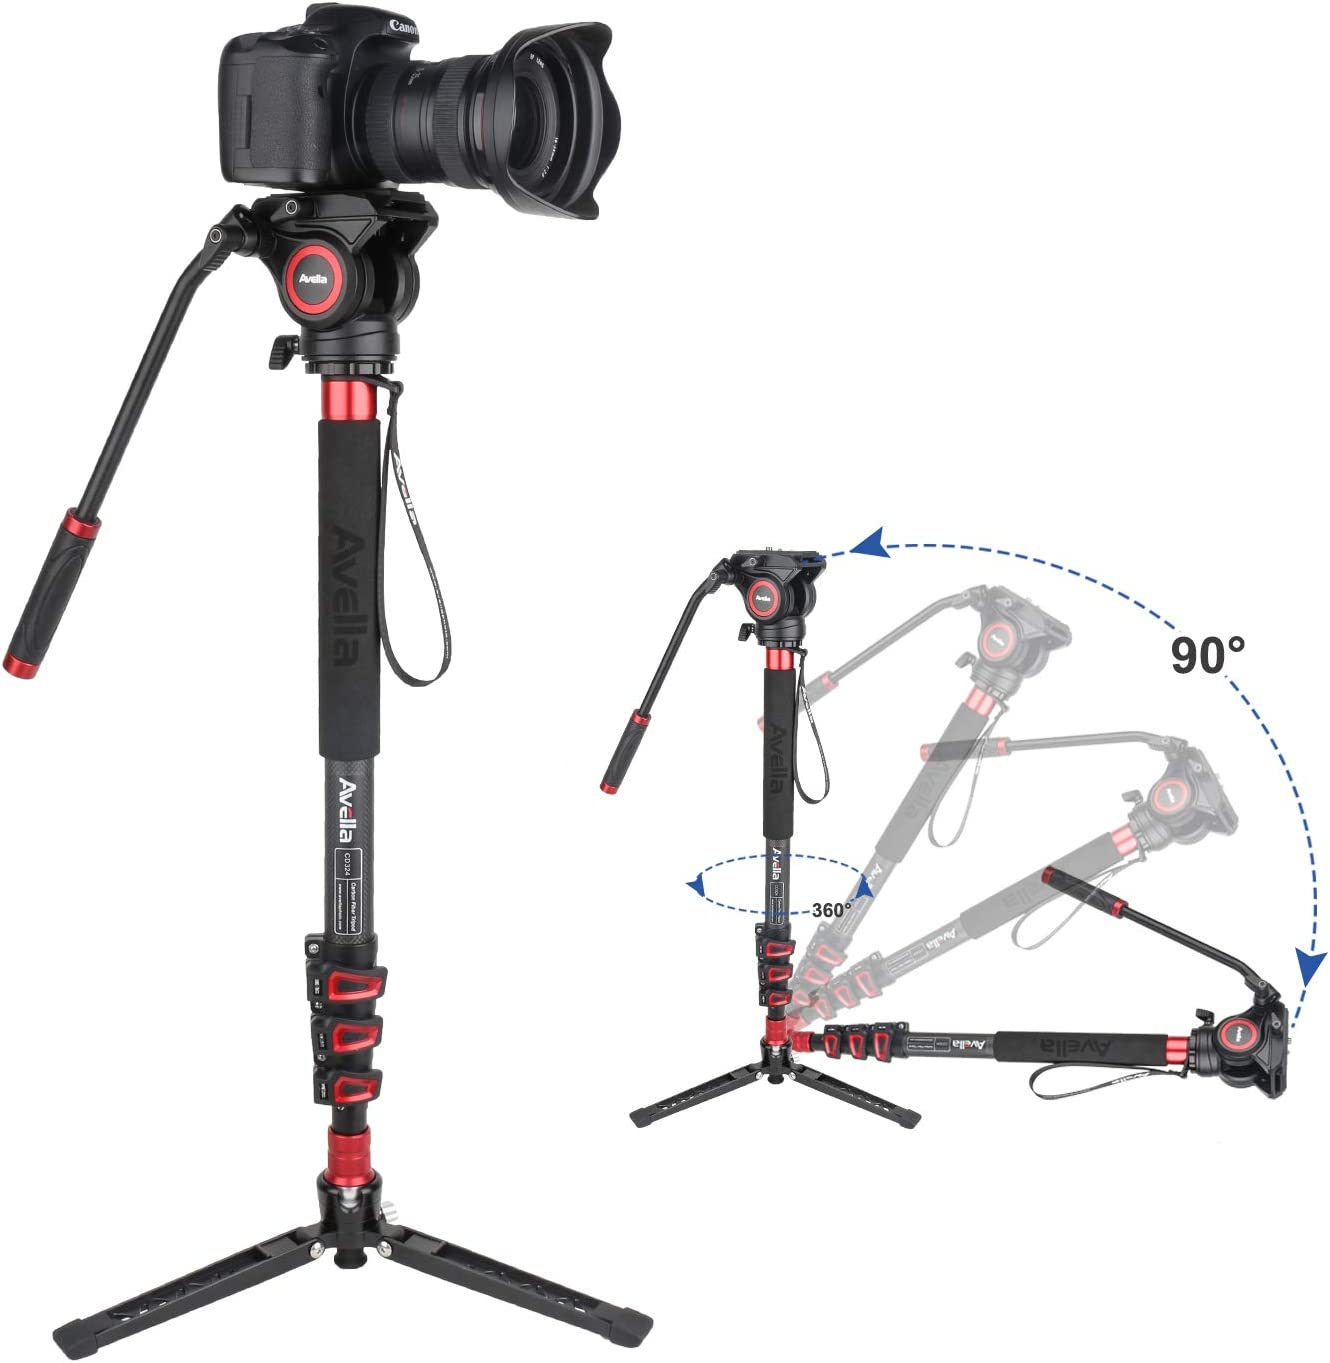 with Fluid Head and Removable feet 71 Inch Max Load 13.2 LB for DSLR and Video Camera Avella CD324 Carbon Fiber Video Monopod Kit